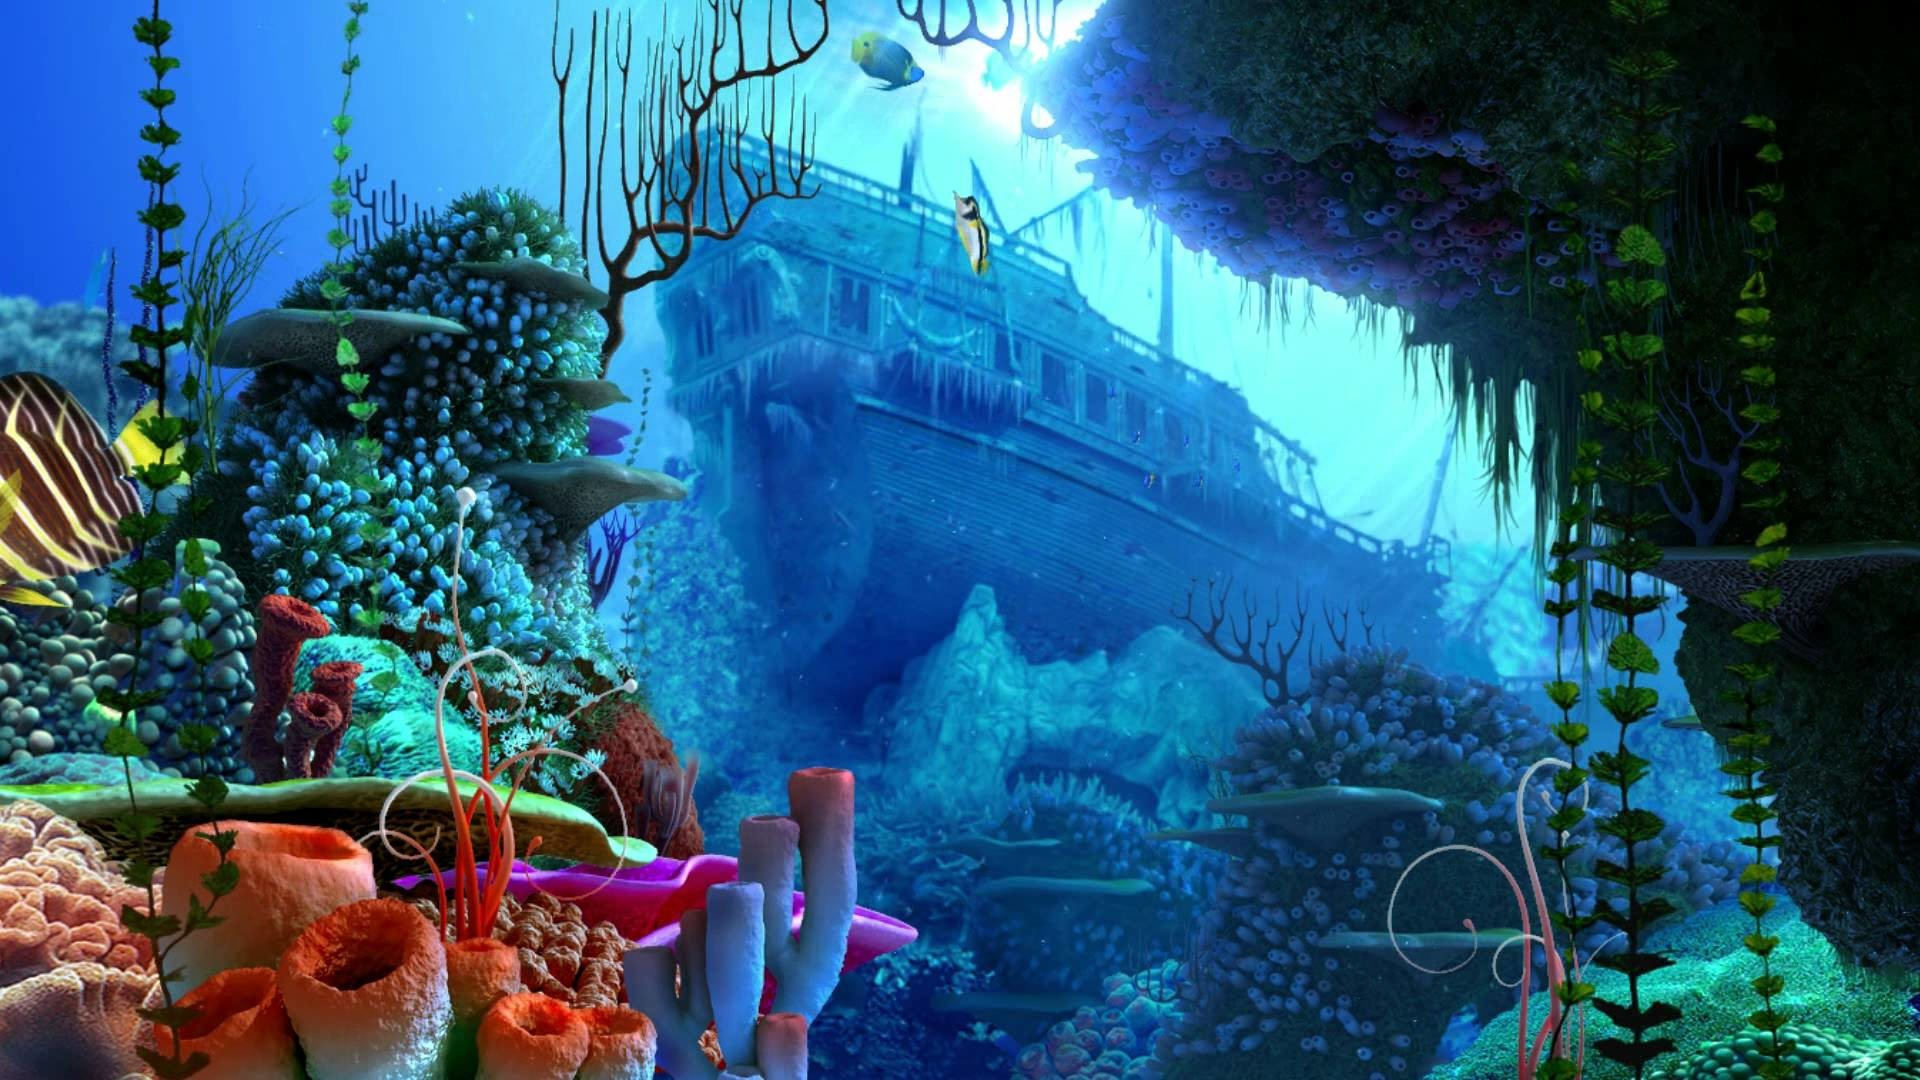 1920x1080 Ocean Dream - Eden by Ledovskiy Valeriy - Aquarium - 3D Screensaver - New  Age HD 1080p - YouTube